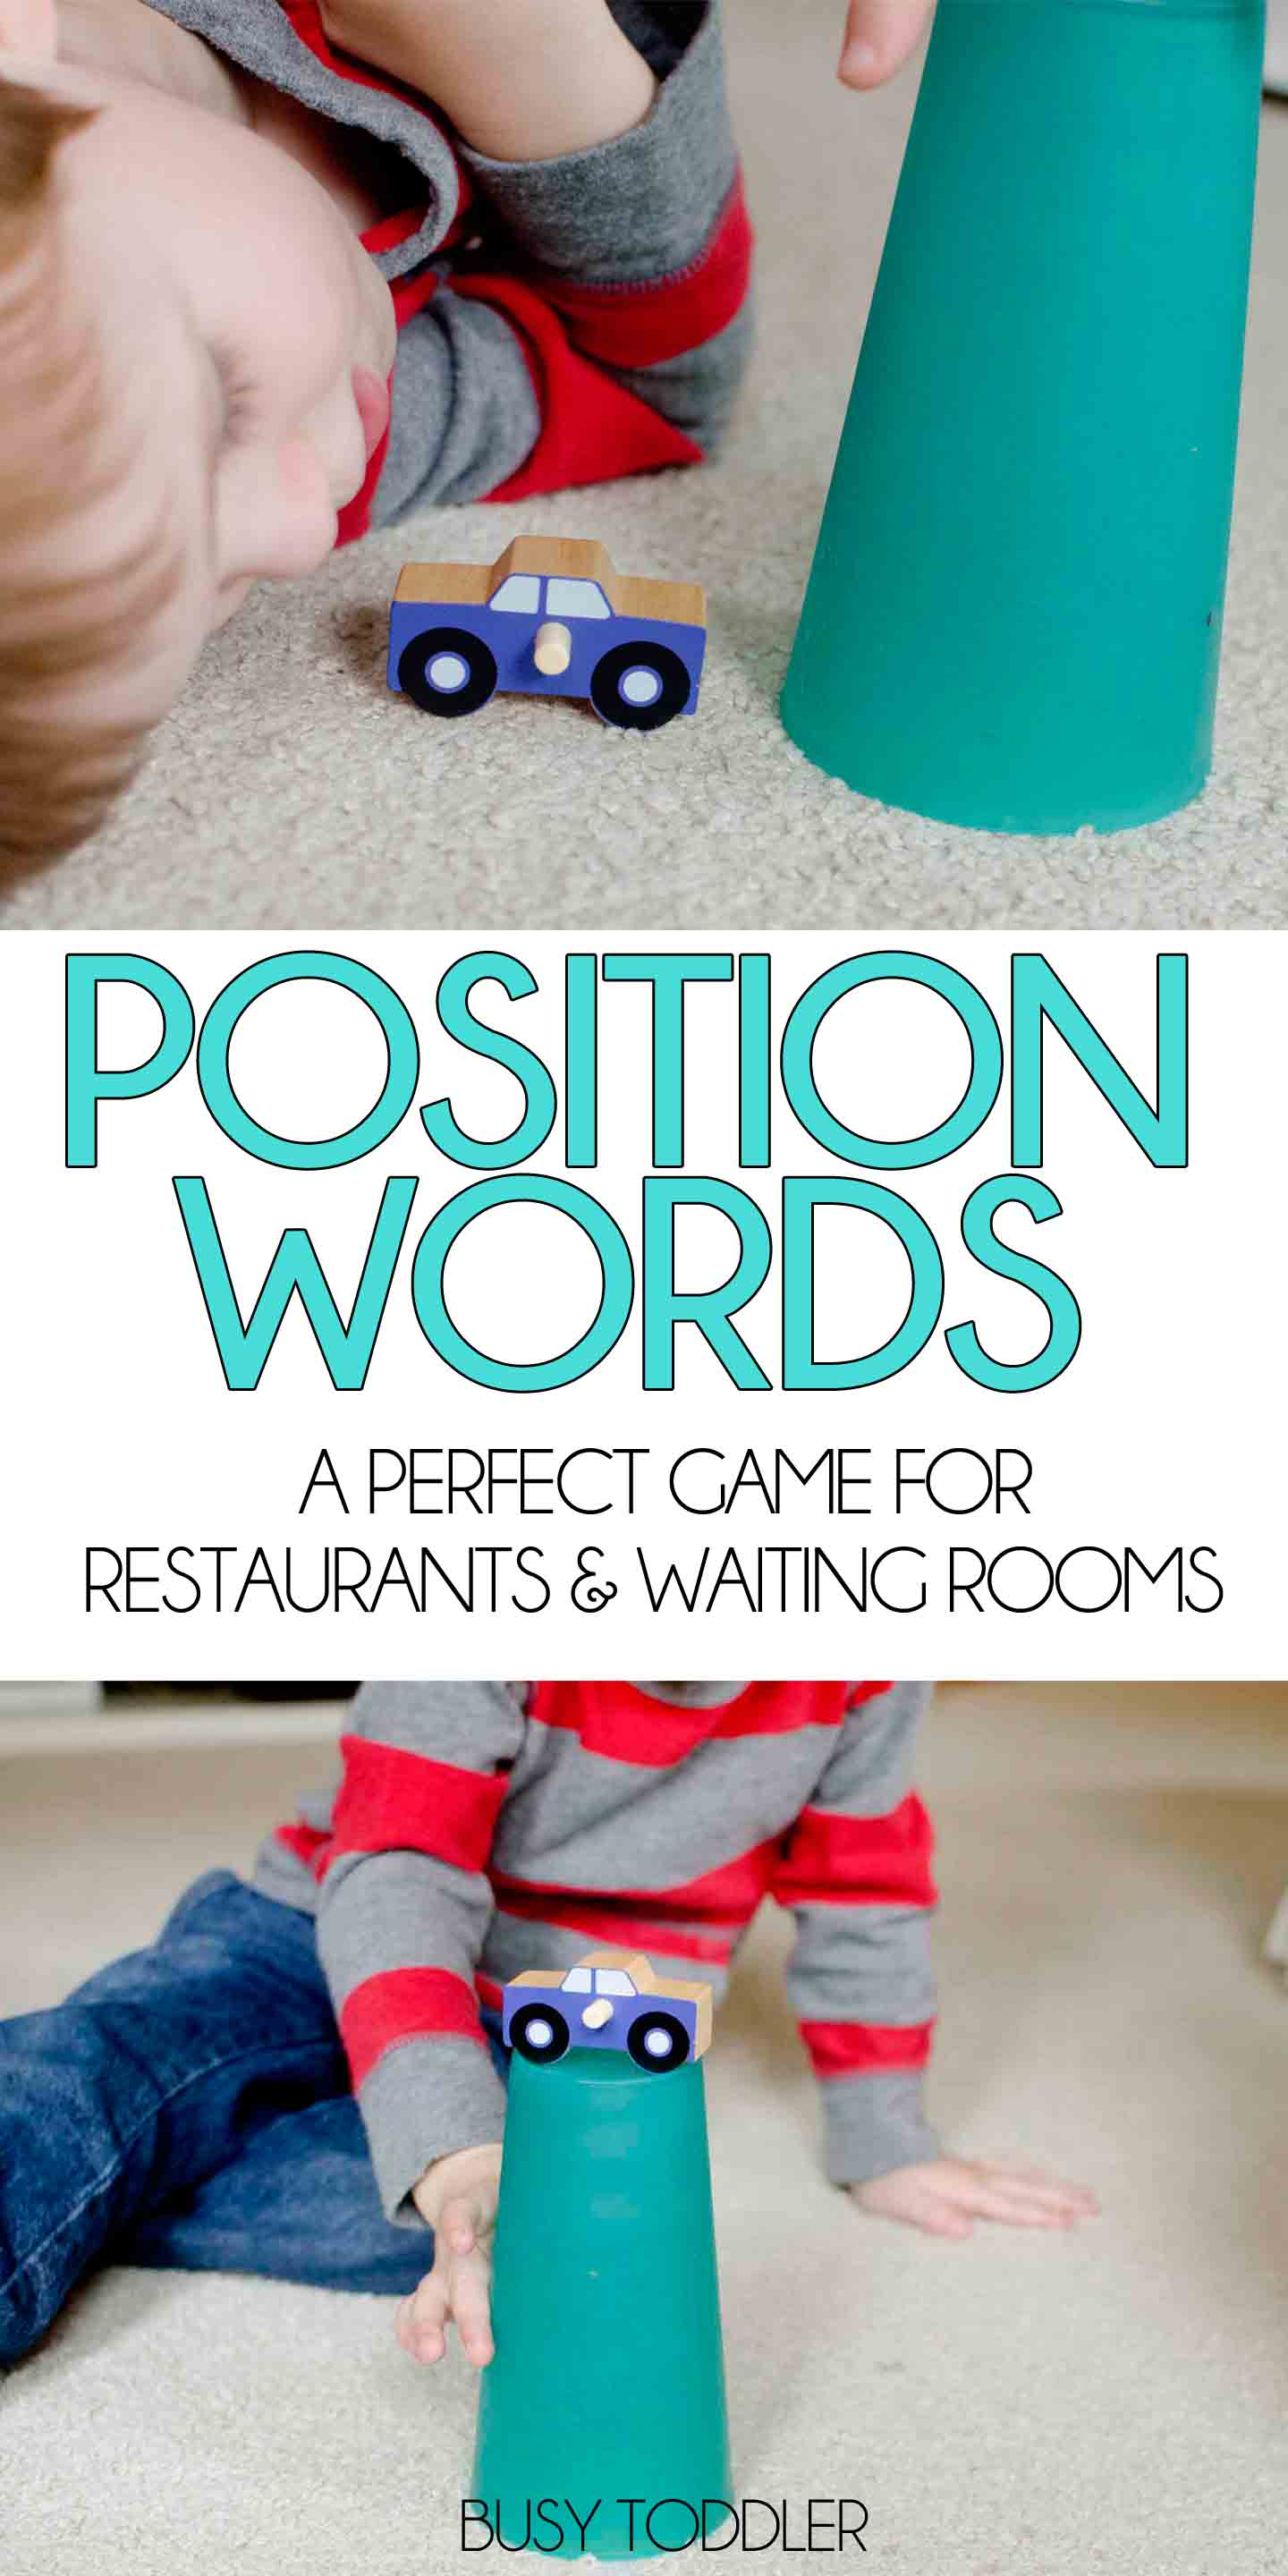 "PRACTICE POSITION WORDS: A fun way to pass the time in restaurants and waiting rooms playing ""Over Under"". Practice math vocabulary words and direction following."